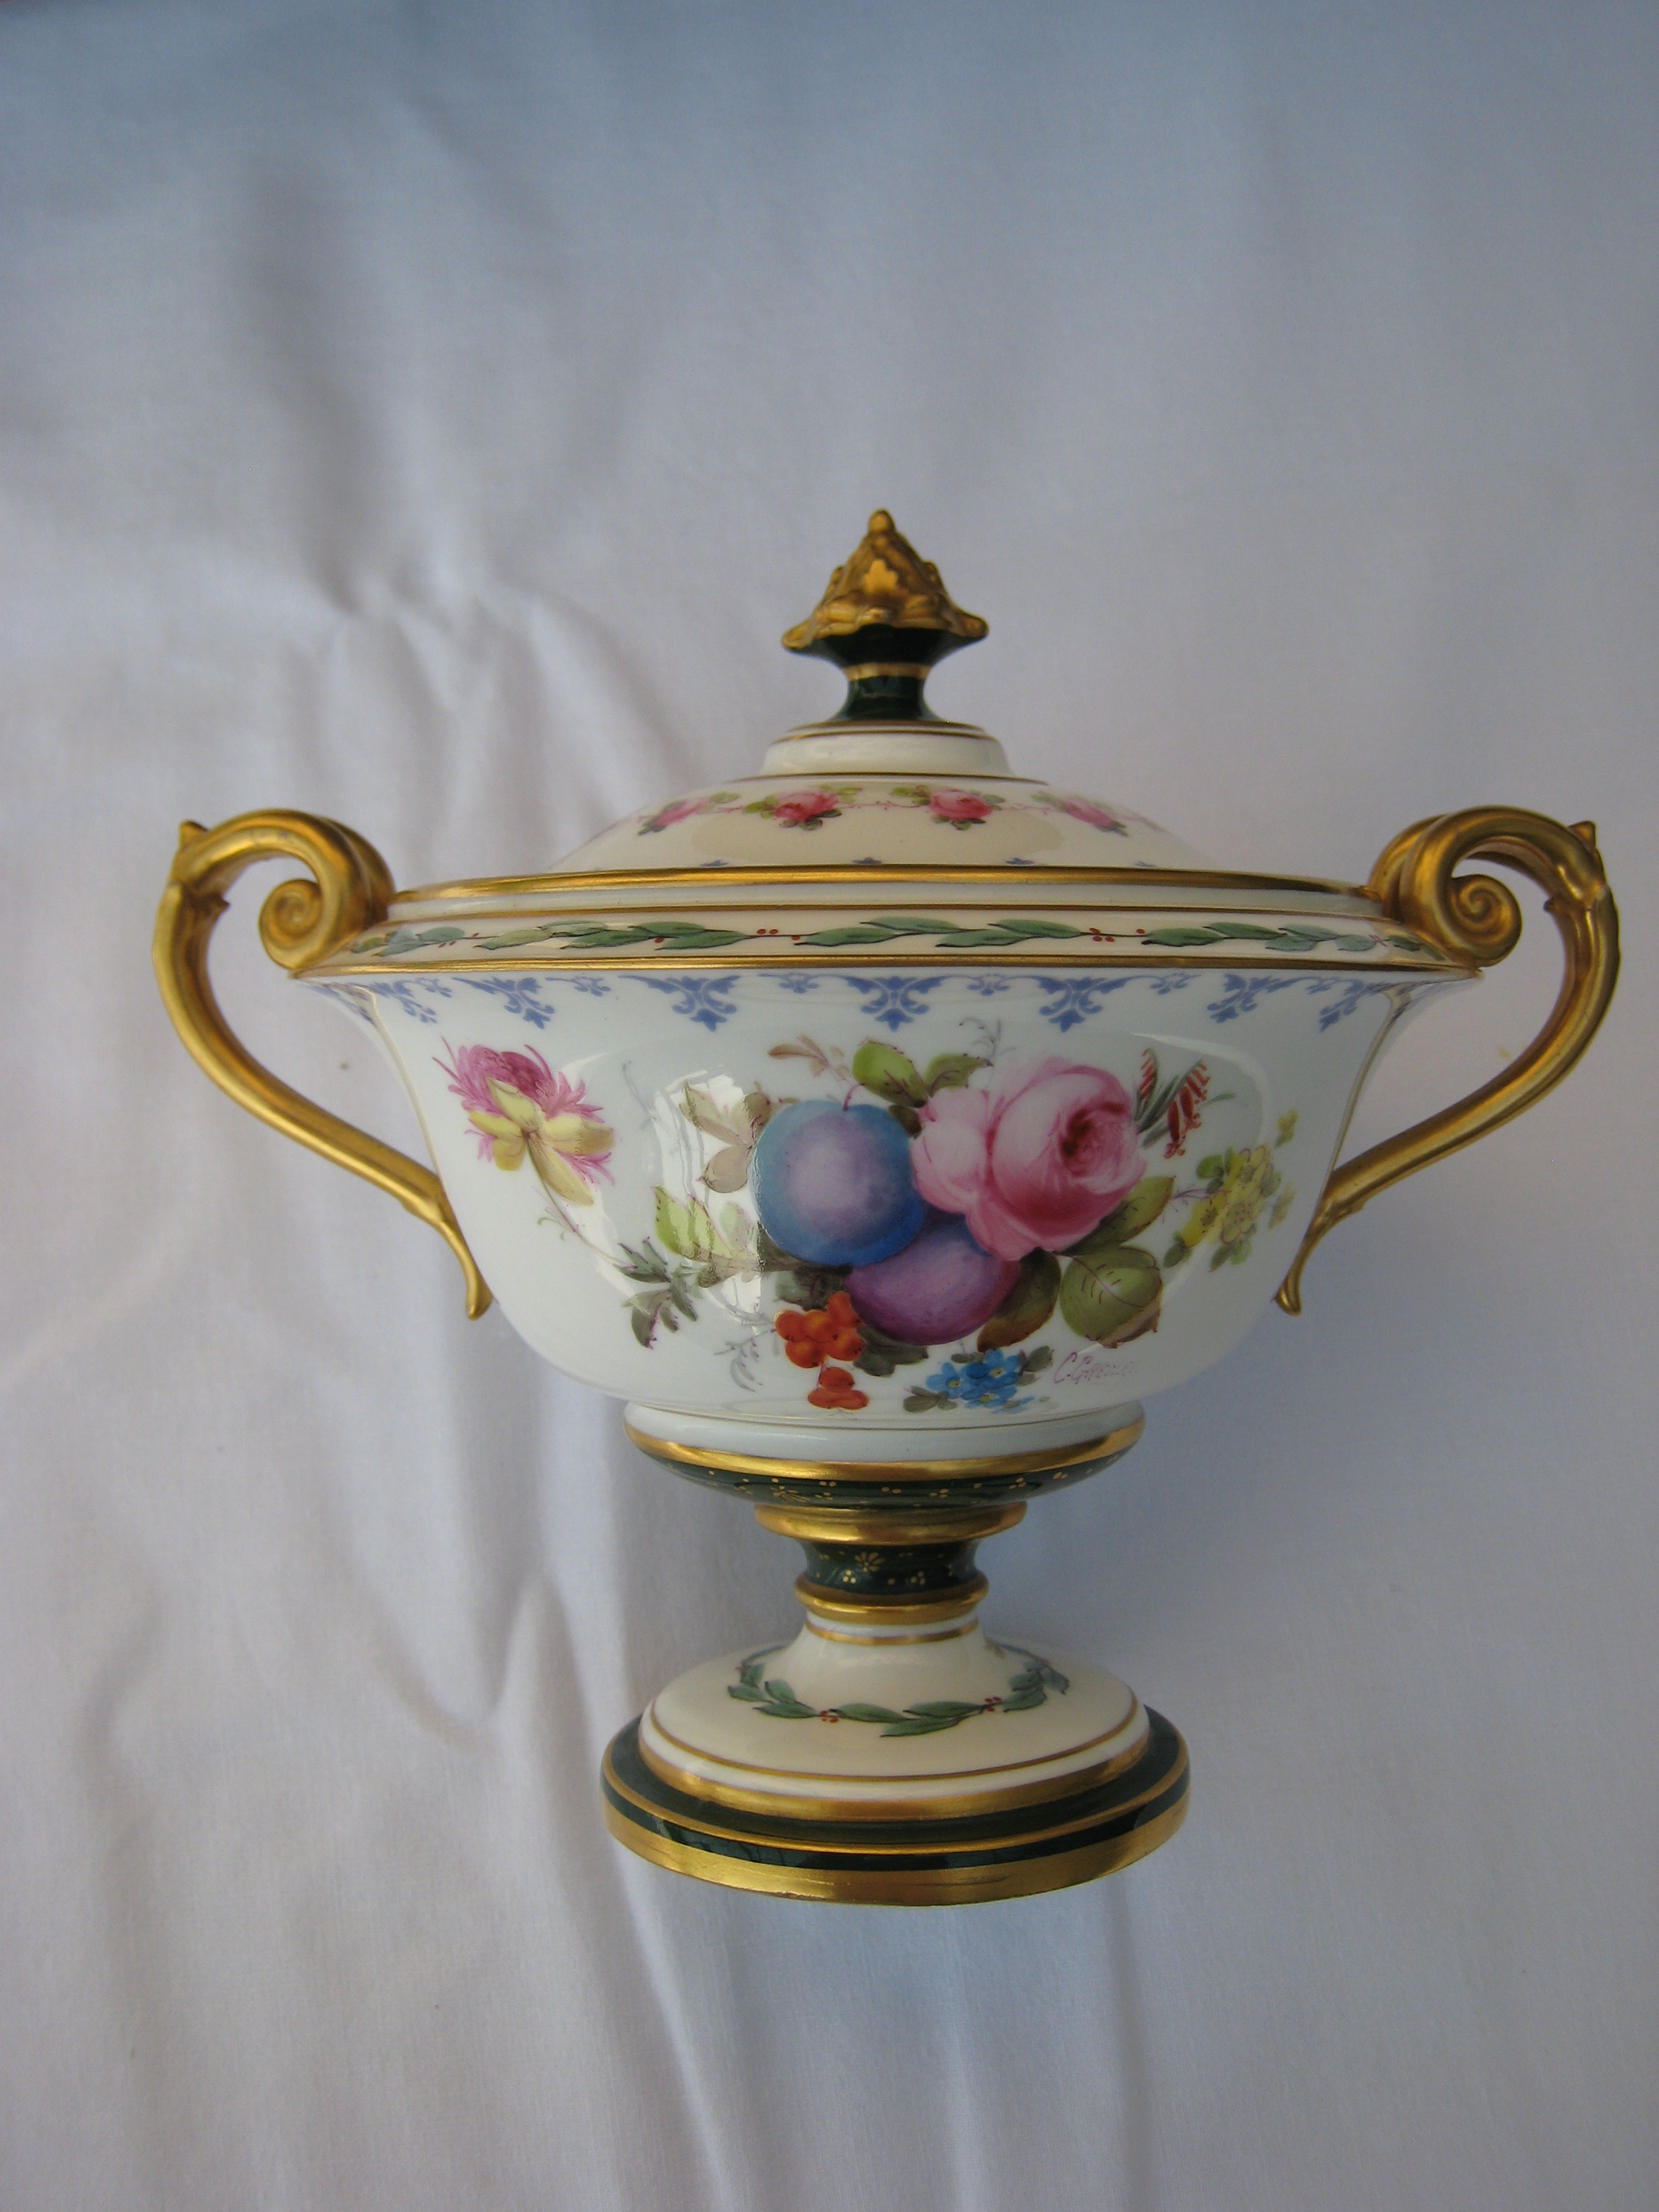 More than 80 exhibitors at cork antique fair this weekend a royal crown derby urn painted by cuthbert greasley c1913 at brian hurleys stand is priced reviewsmspy